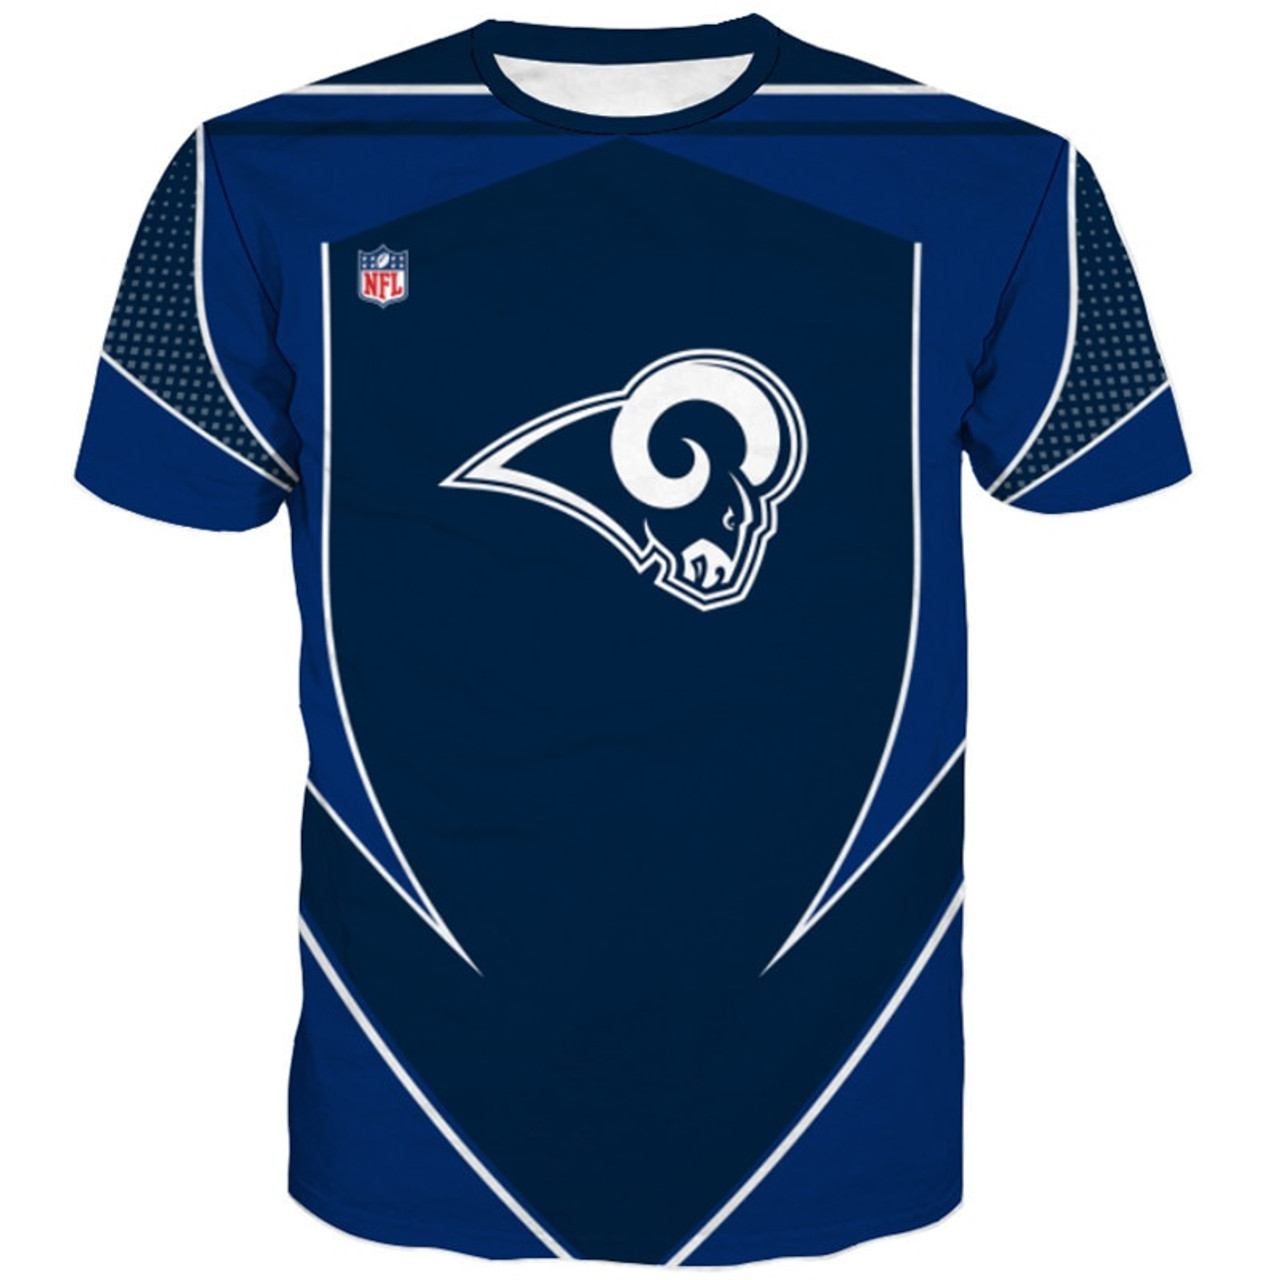 **(OFFICIAL-N.F.L.LOS-ANGELES-RAMS-TEAM-TEES/NEW-CUSTOM-3D-EFFECT-GRAPHIC-PRINTED-DOUBLE-SIDED-DESIGNED/ALL-OVER-OFFICIAL-RAMS-LOGOS & OFFICIAL-CLASSIC-ALL-RAMS-TEAM-COLORS/NICE-PREMIUM-OFFICIAL-N.F.L.RAMS-TEAM-TRENDY-GAME-DAY-TEES)**